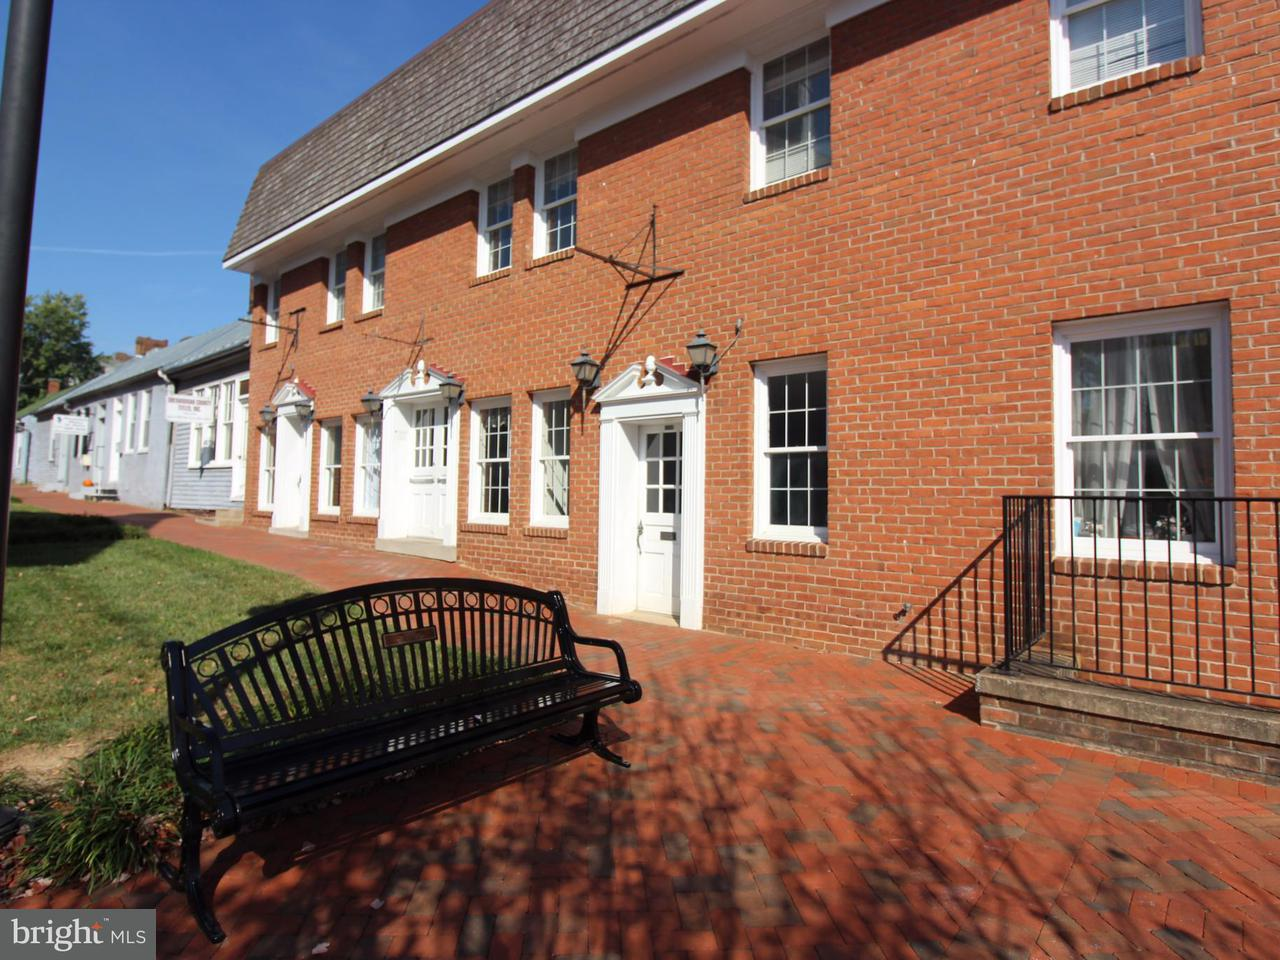 Other Residential for Rent at 109b Main St Woodstock, Virginia 22664 United States